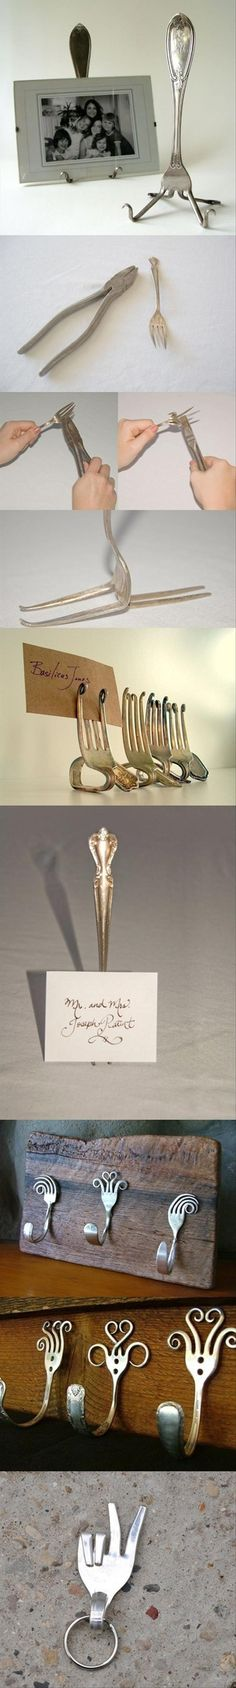 12 DIY ideas- I never knew there were so many ways to re-use forks!